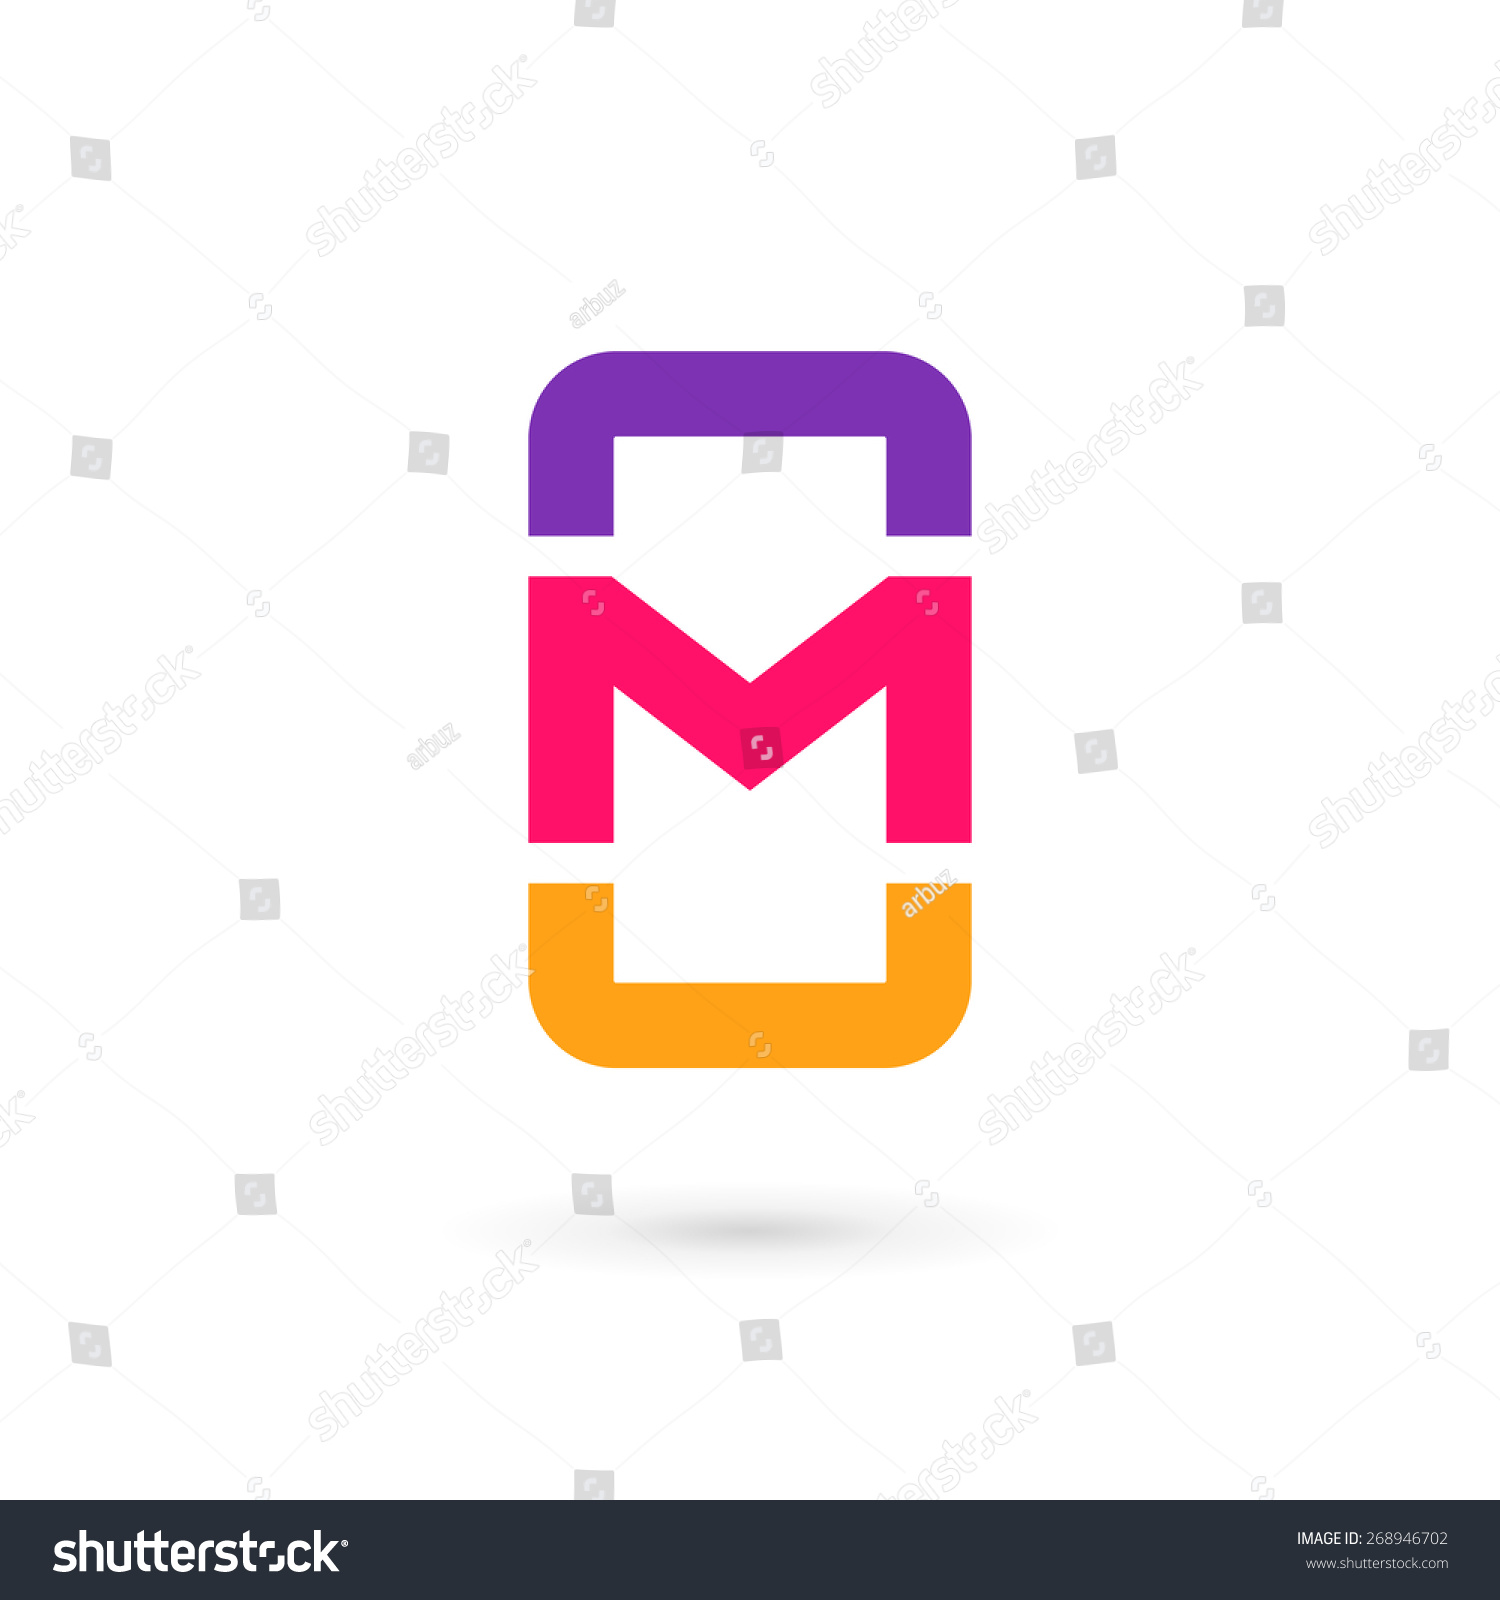 letter designs app mobile phone app letter m logo stock vector 268946702 letter designs app